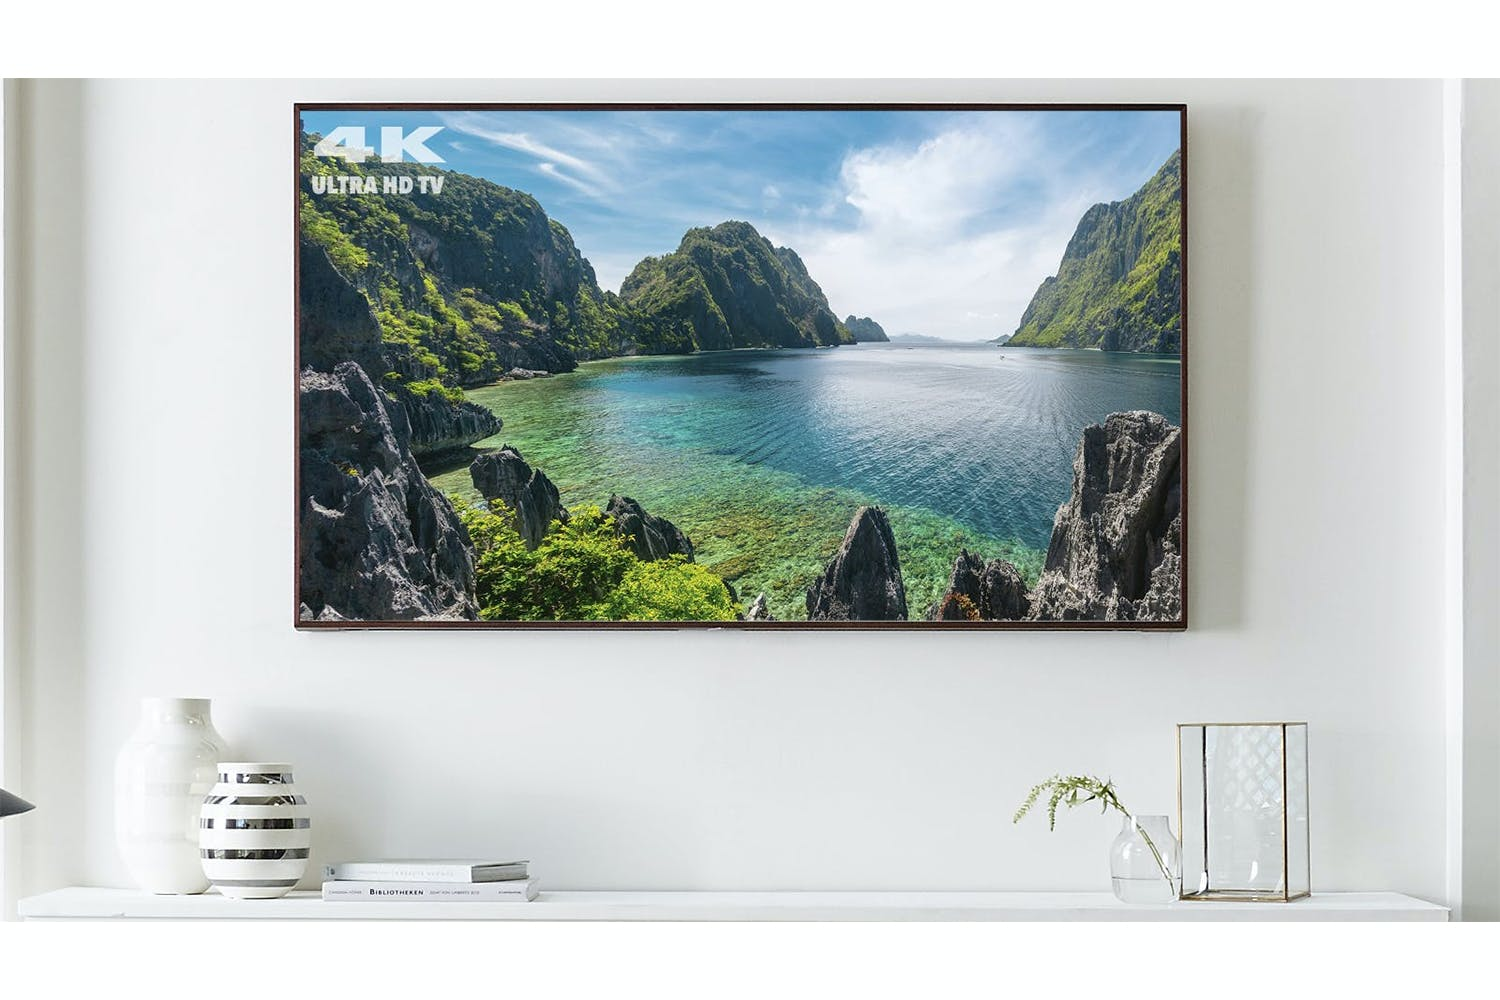 samsung 55 39 the frame 39 4k smart tv harvey norman new zealand